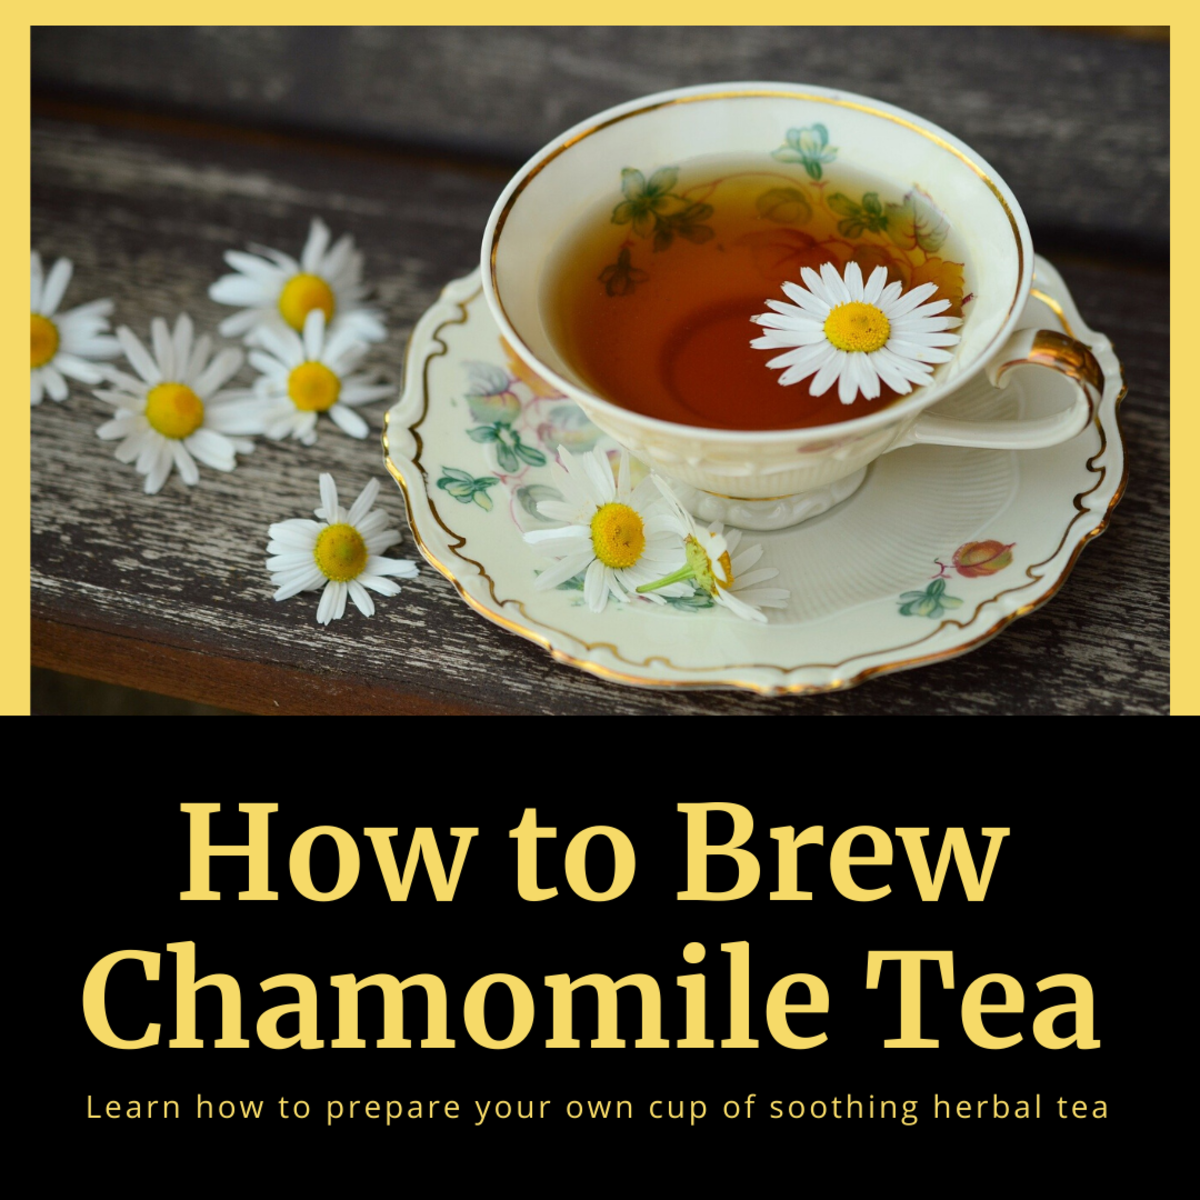 This article will provide you with an easy guide to brewing your own chamomile tea at home.